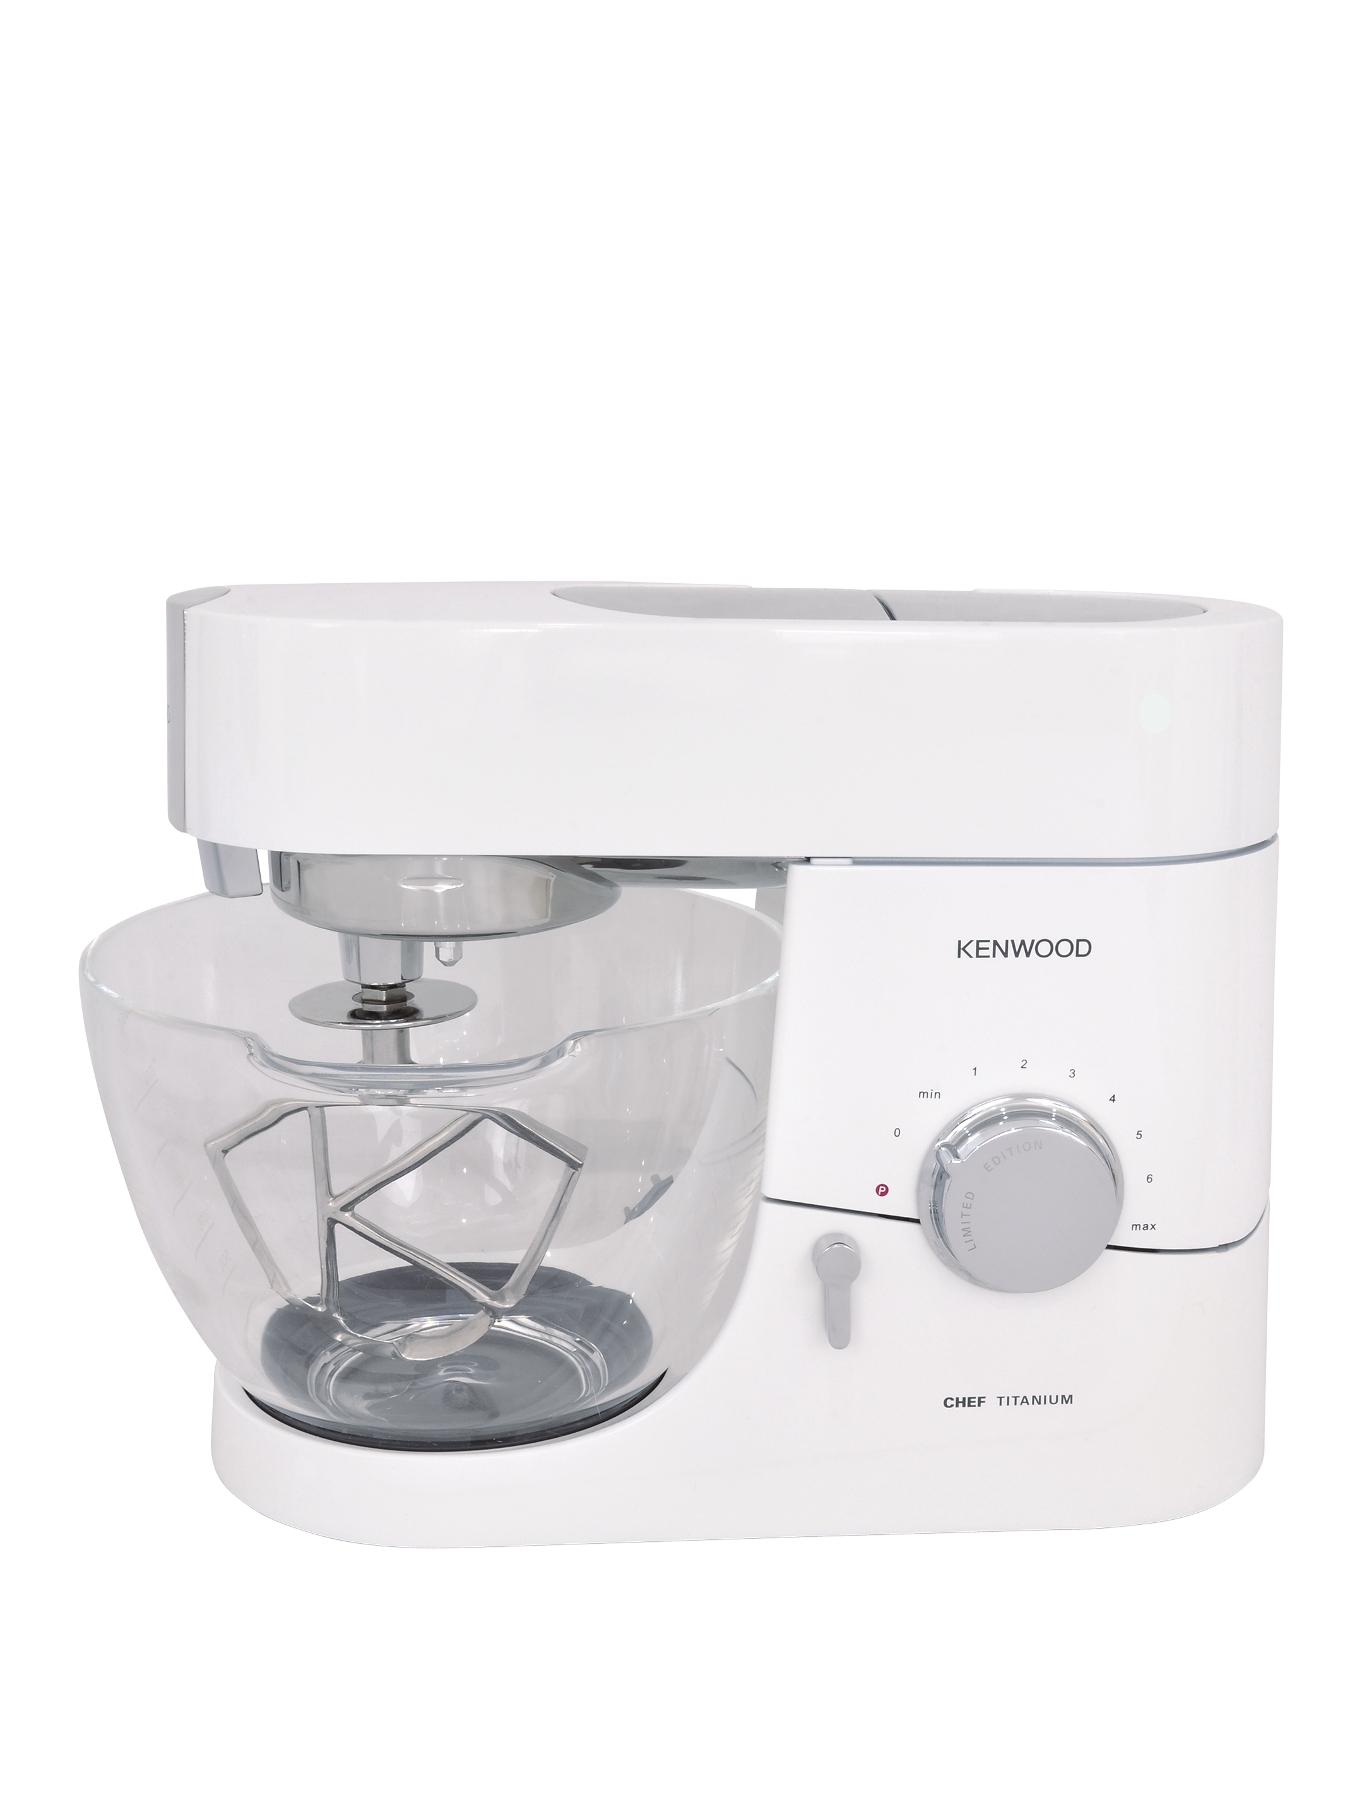 Kenwood Titanium Chef Kitchen Machine - Gloss White